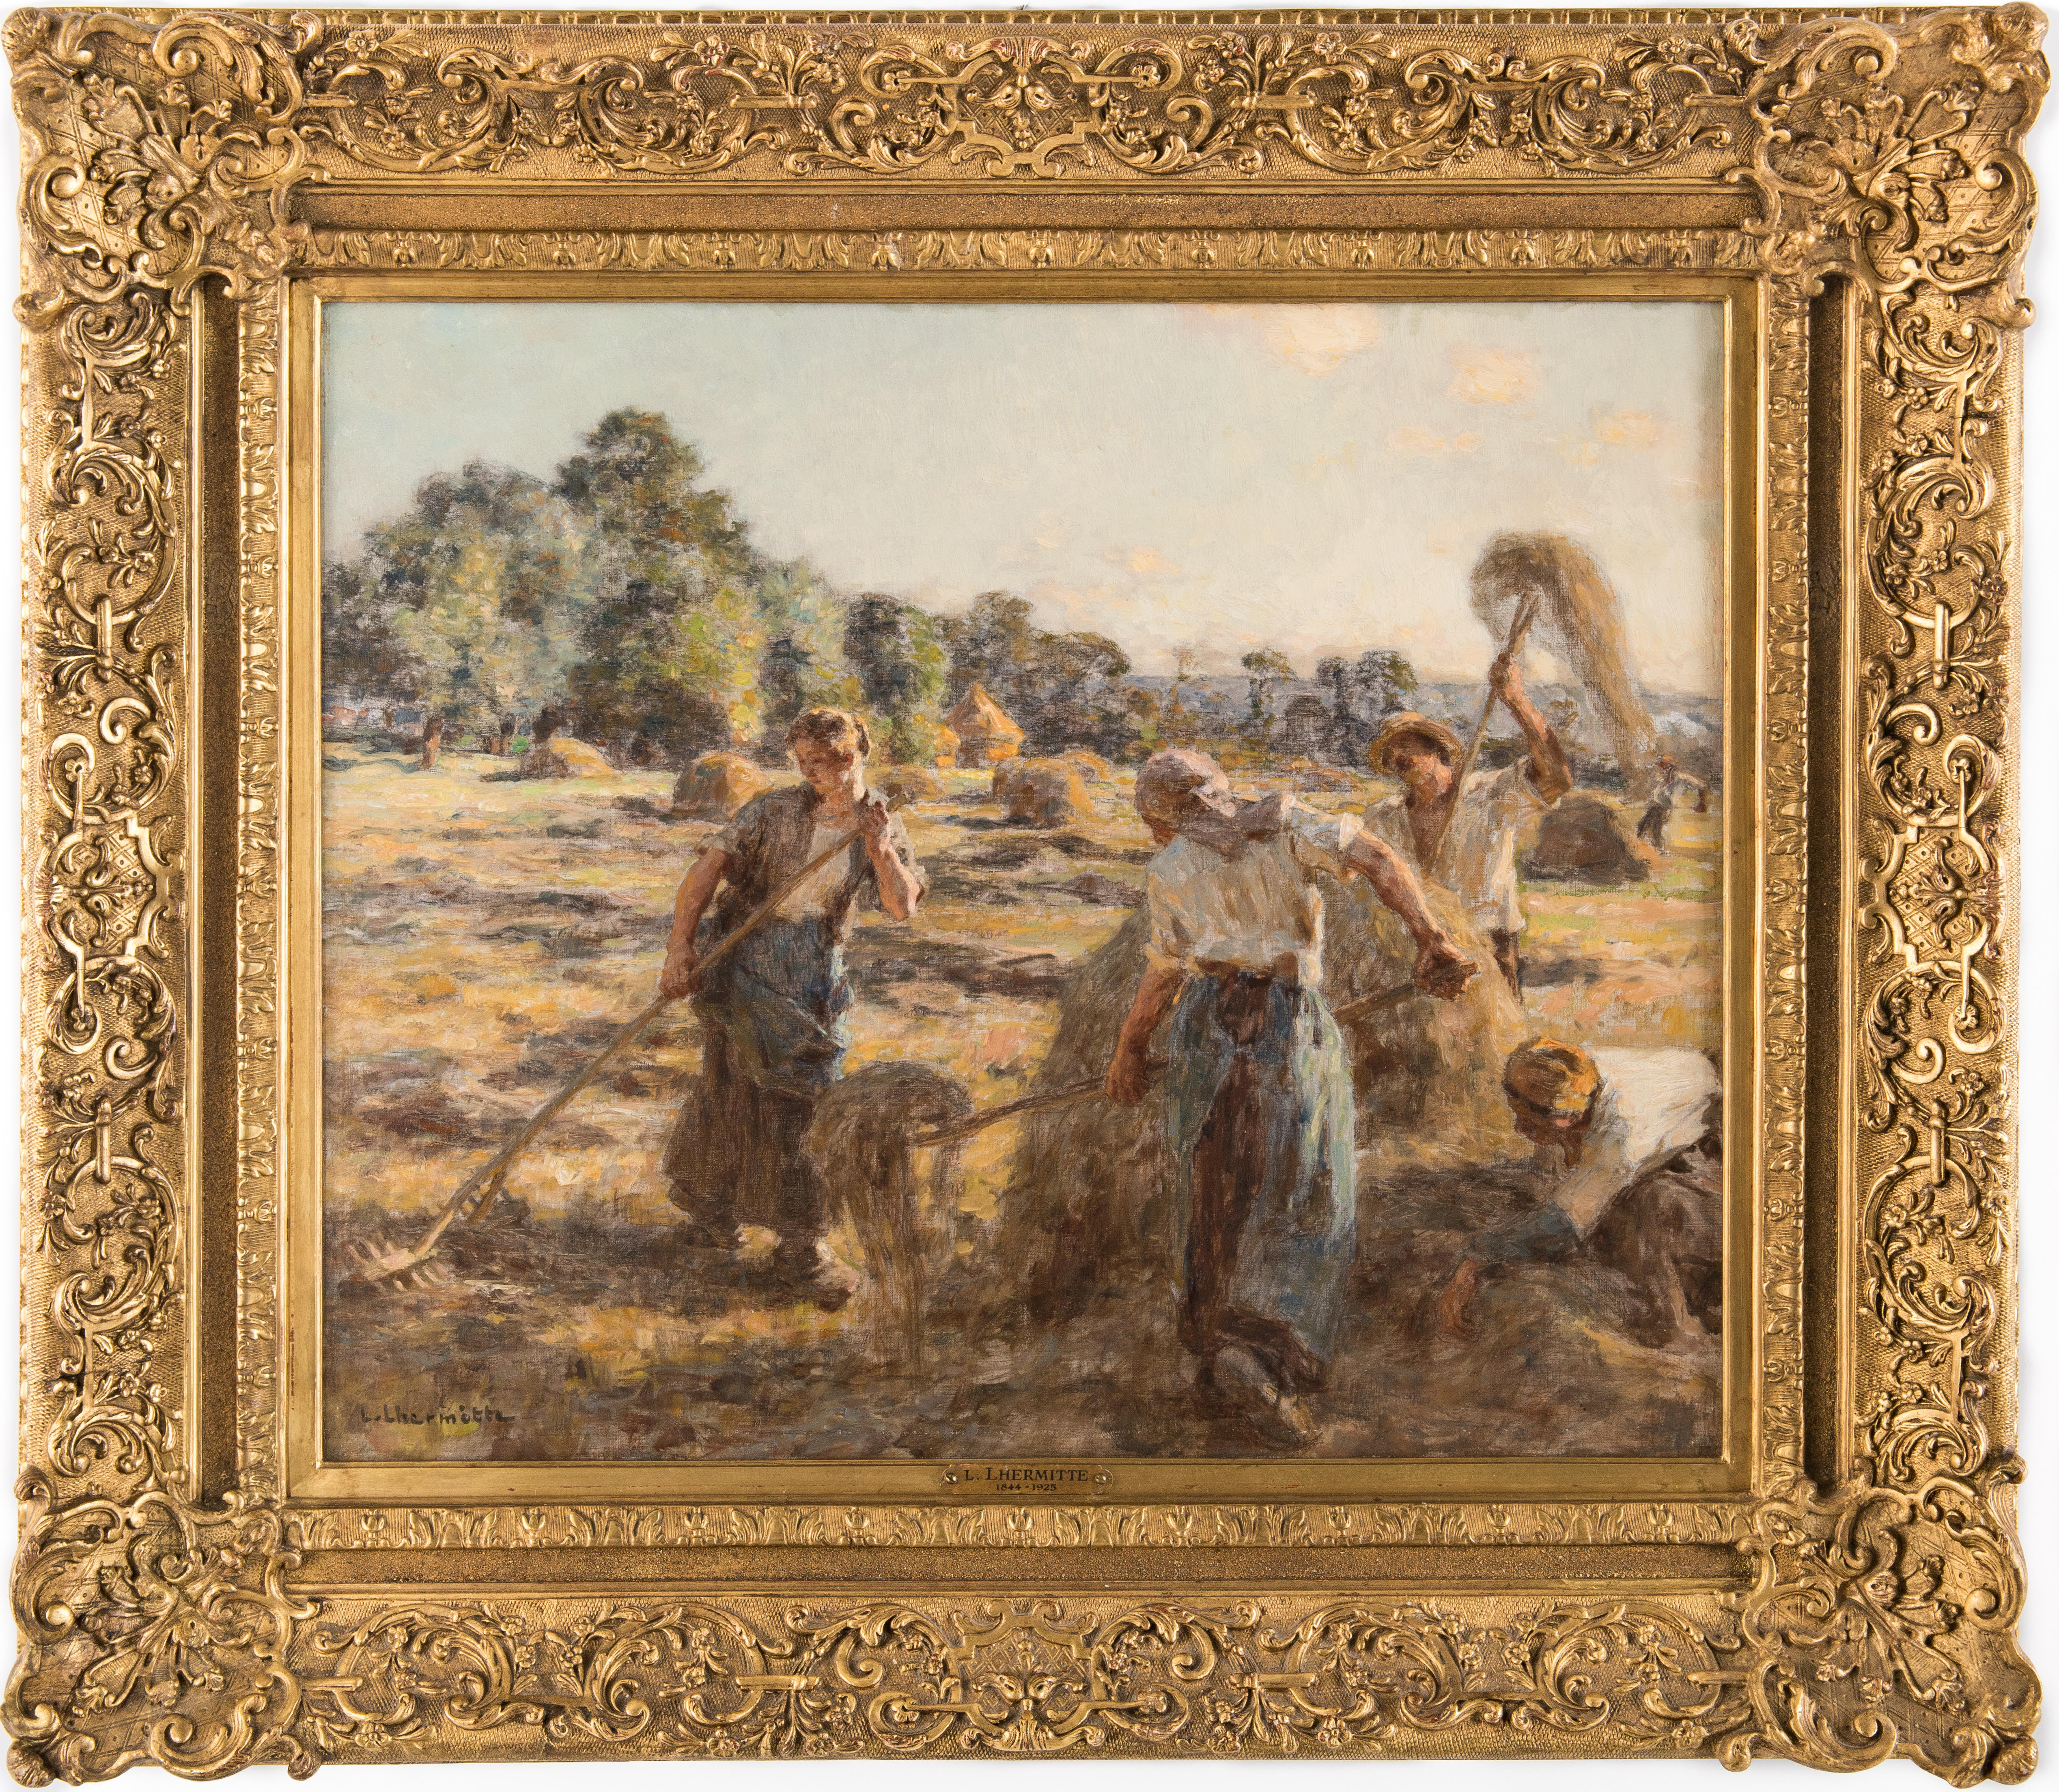 July 13, 2019 Historic Summer Fine Art and Antique Auction